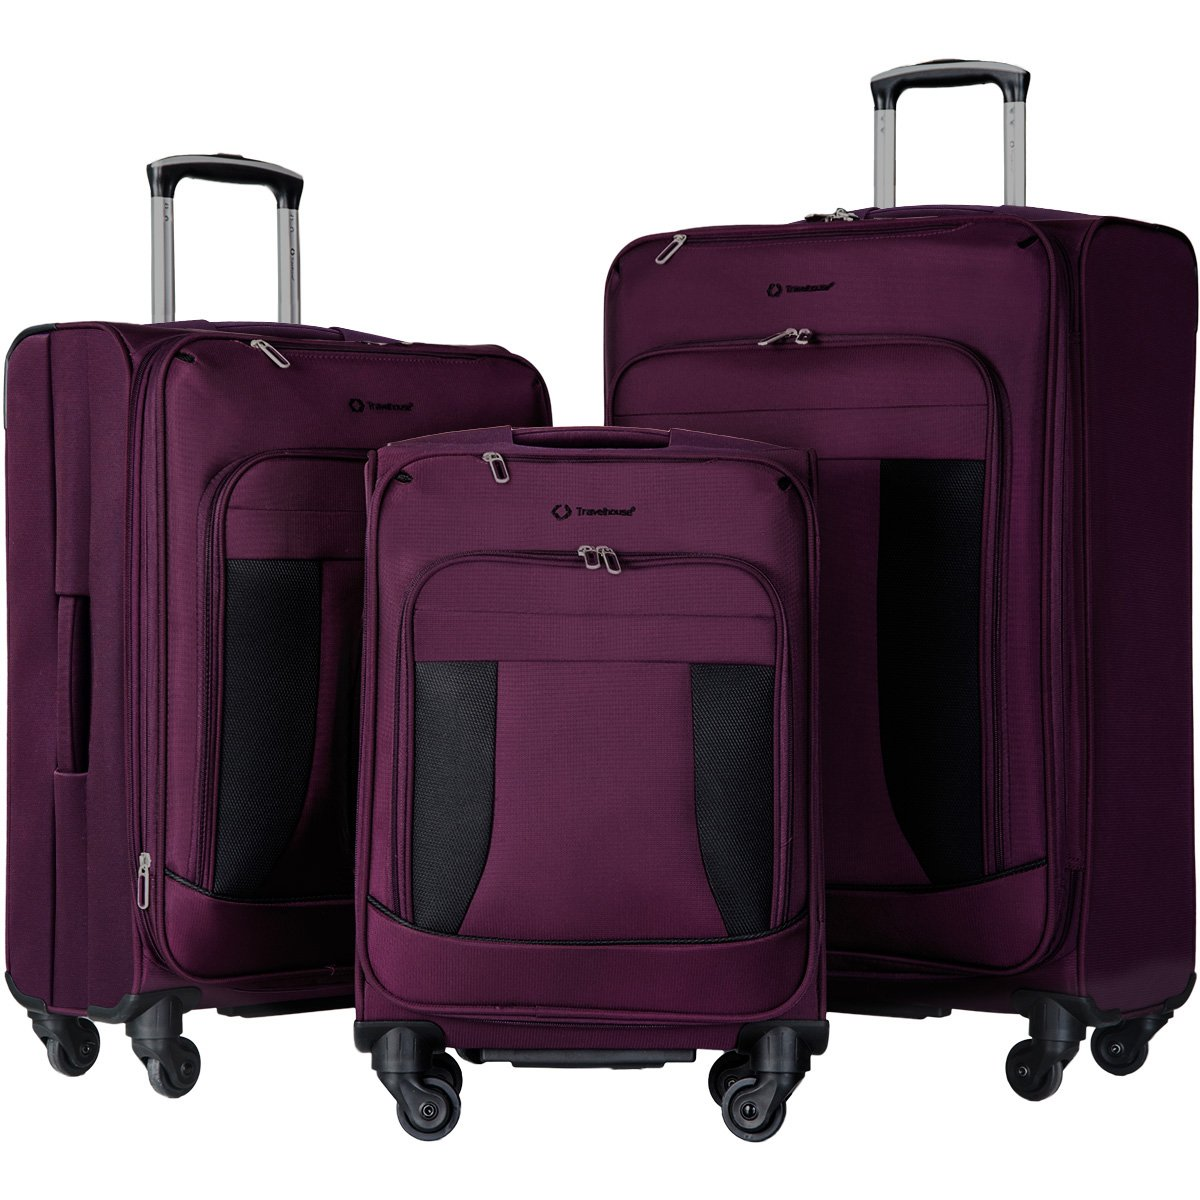 Travelhouse 3 Piece Luggage Set Softshell Deluxe Expandable Spinner Suitcase(Purple and Black) by Merax